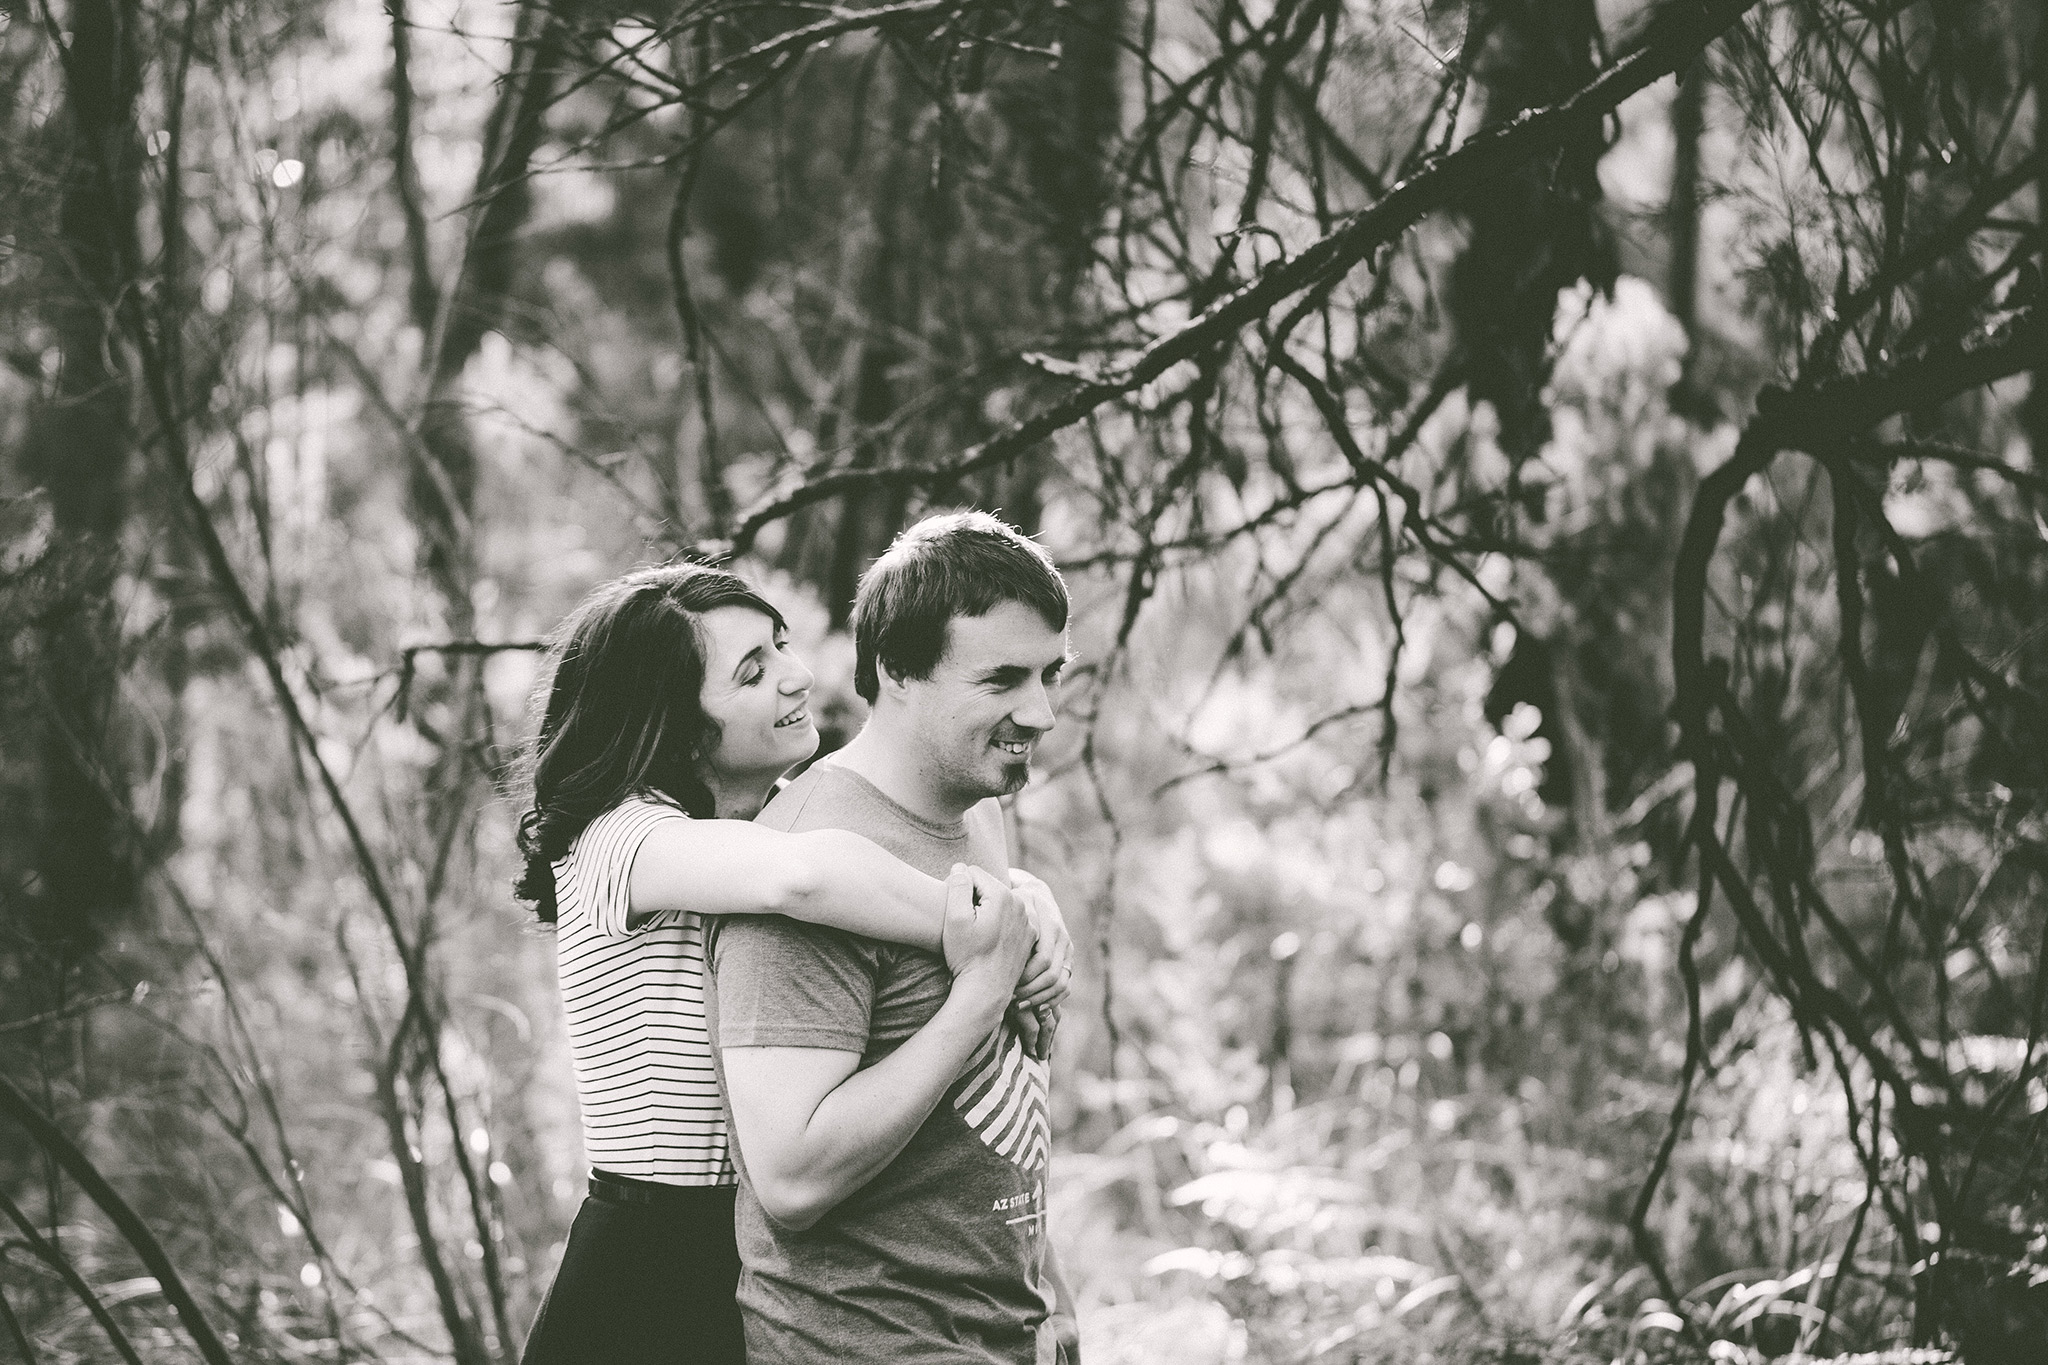 Nadia-Daniel-Melbourne-Quirky-Fun-Relaxed-Engagement-Session-Wedding-Photography_10